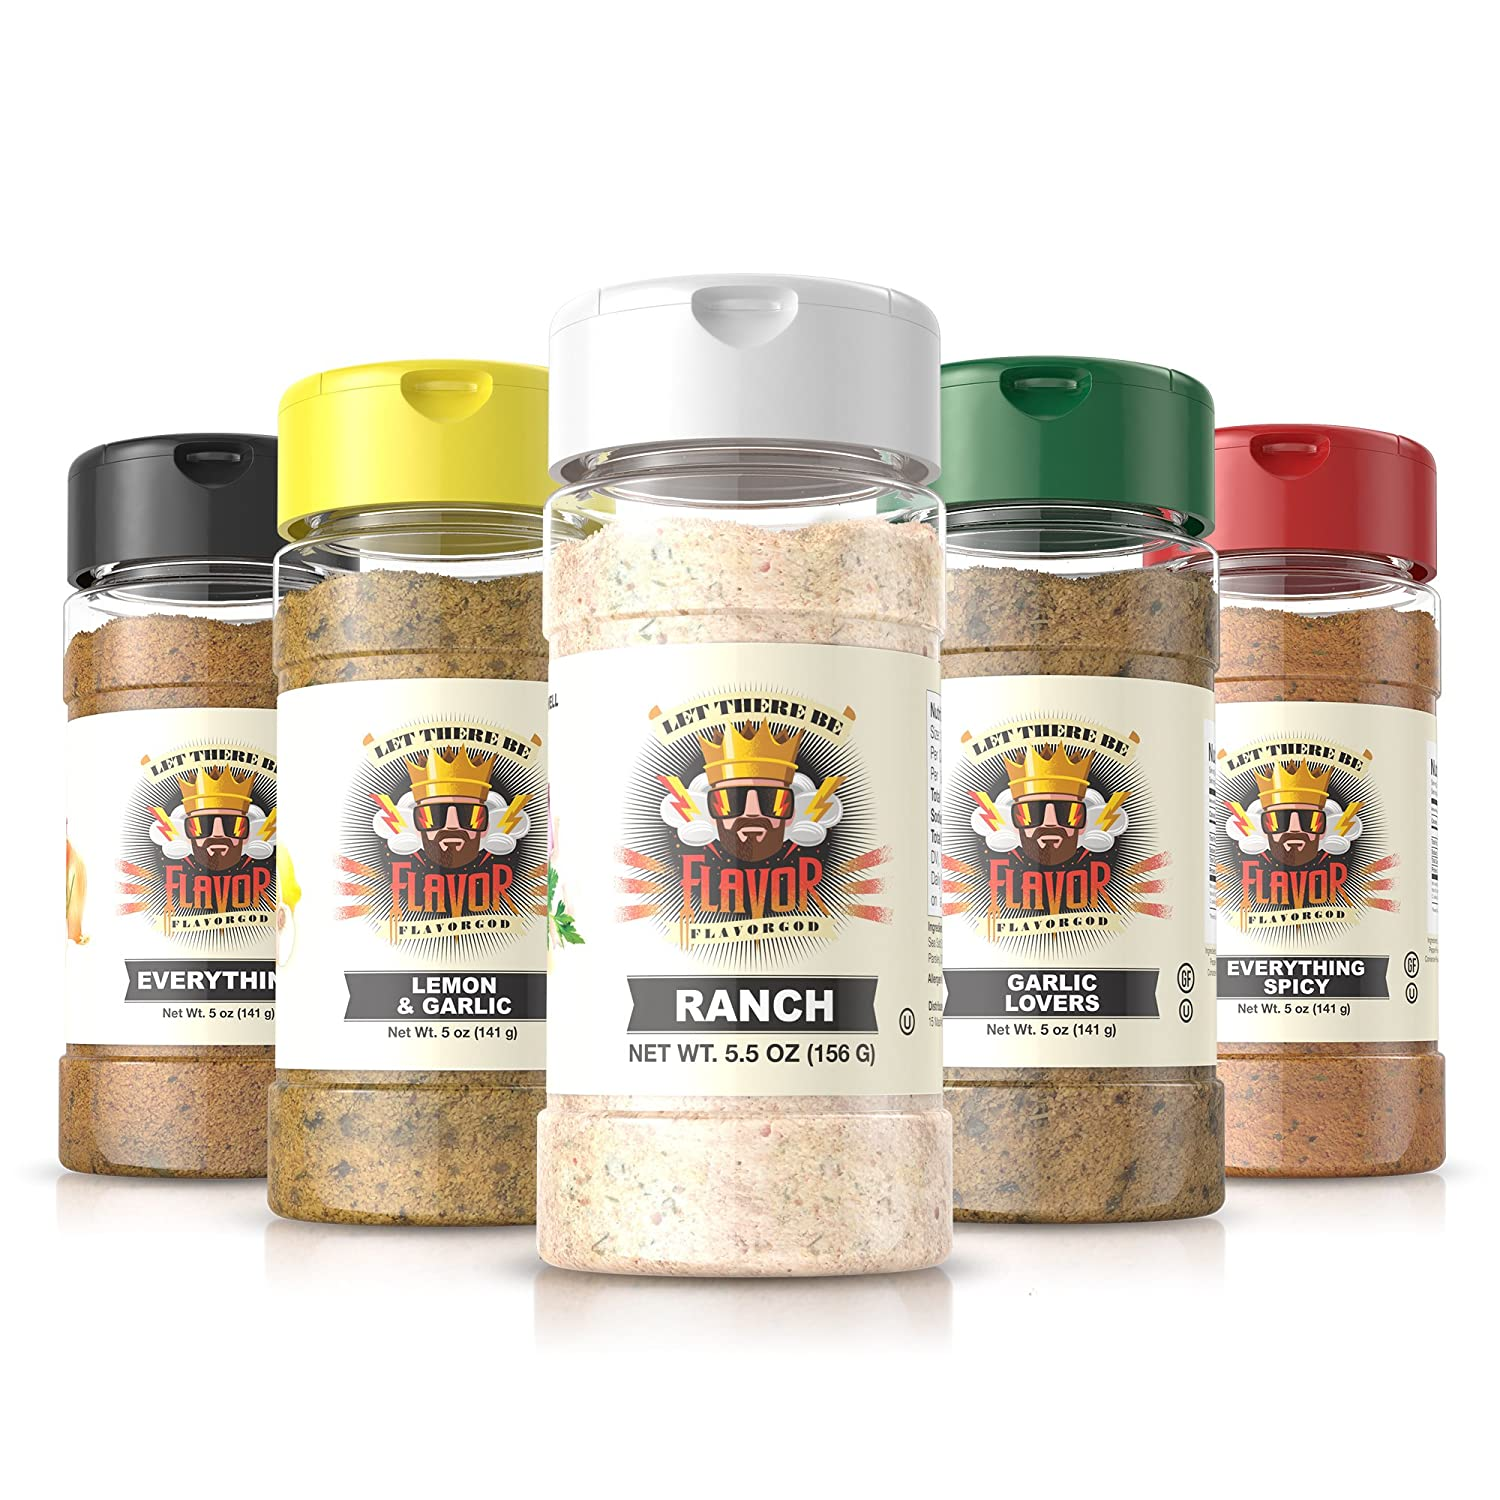 #1 Best-Selling 5oz. Flavor God Seasonings (5 Bottle Ranch Combo Pack)